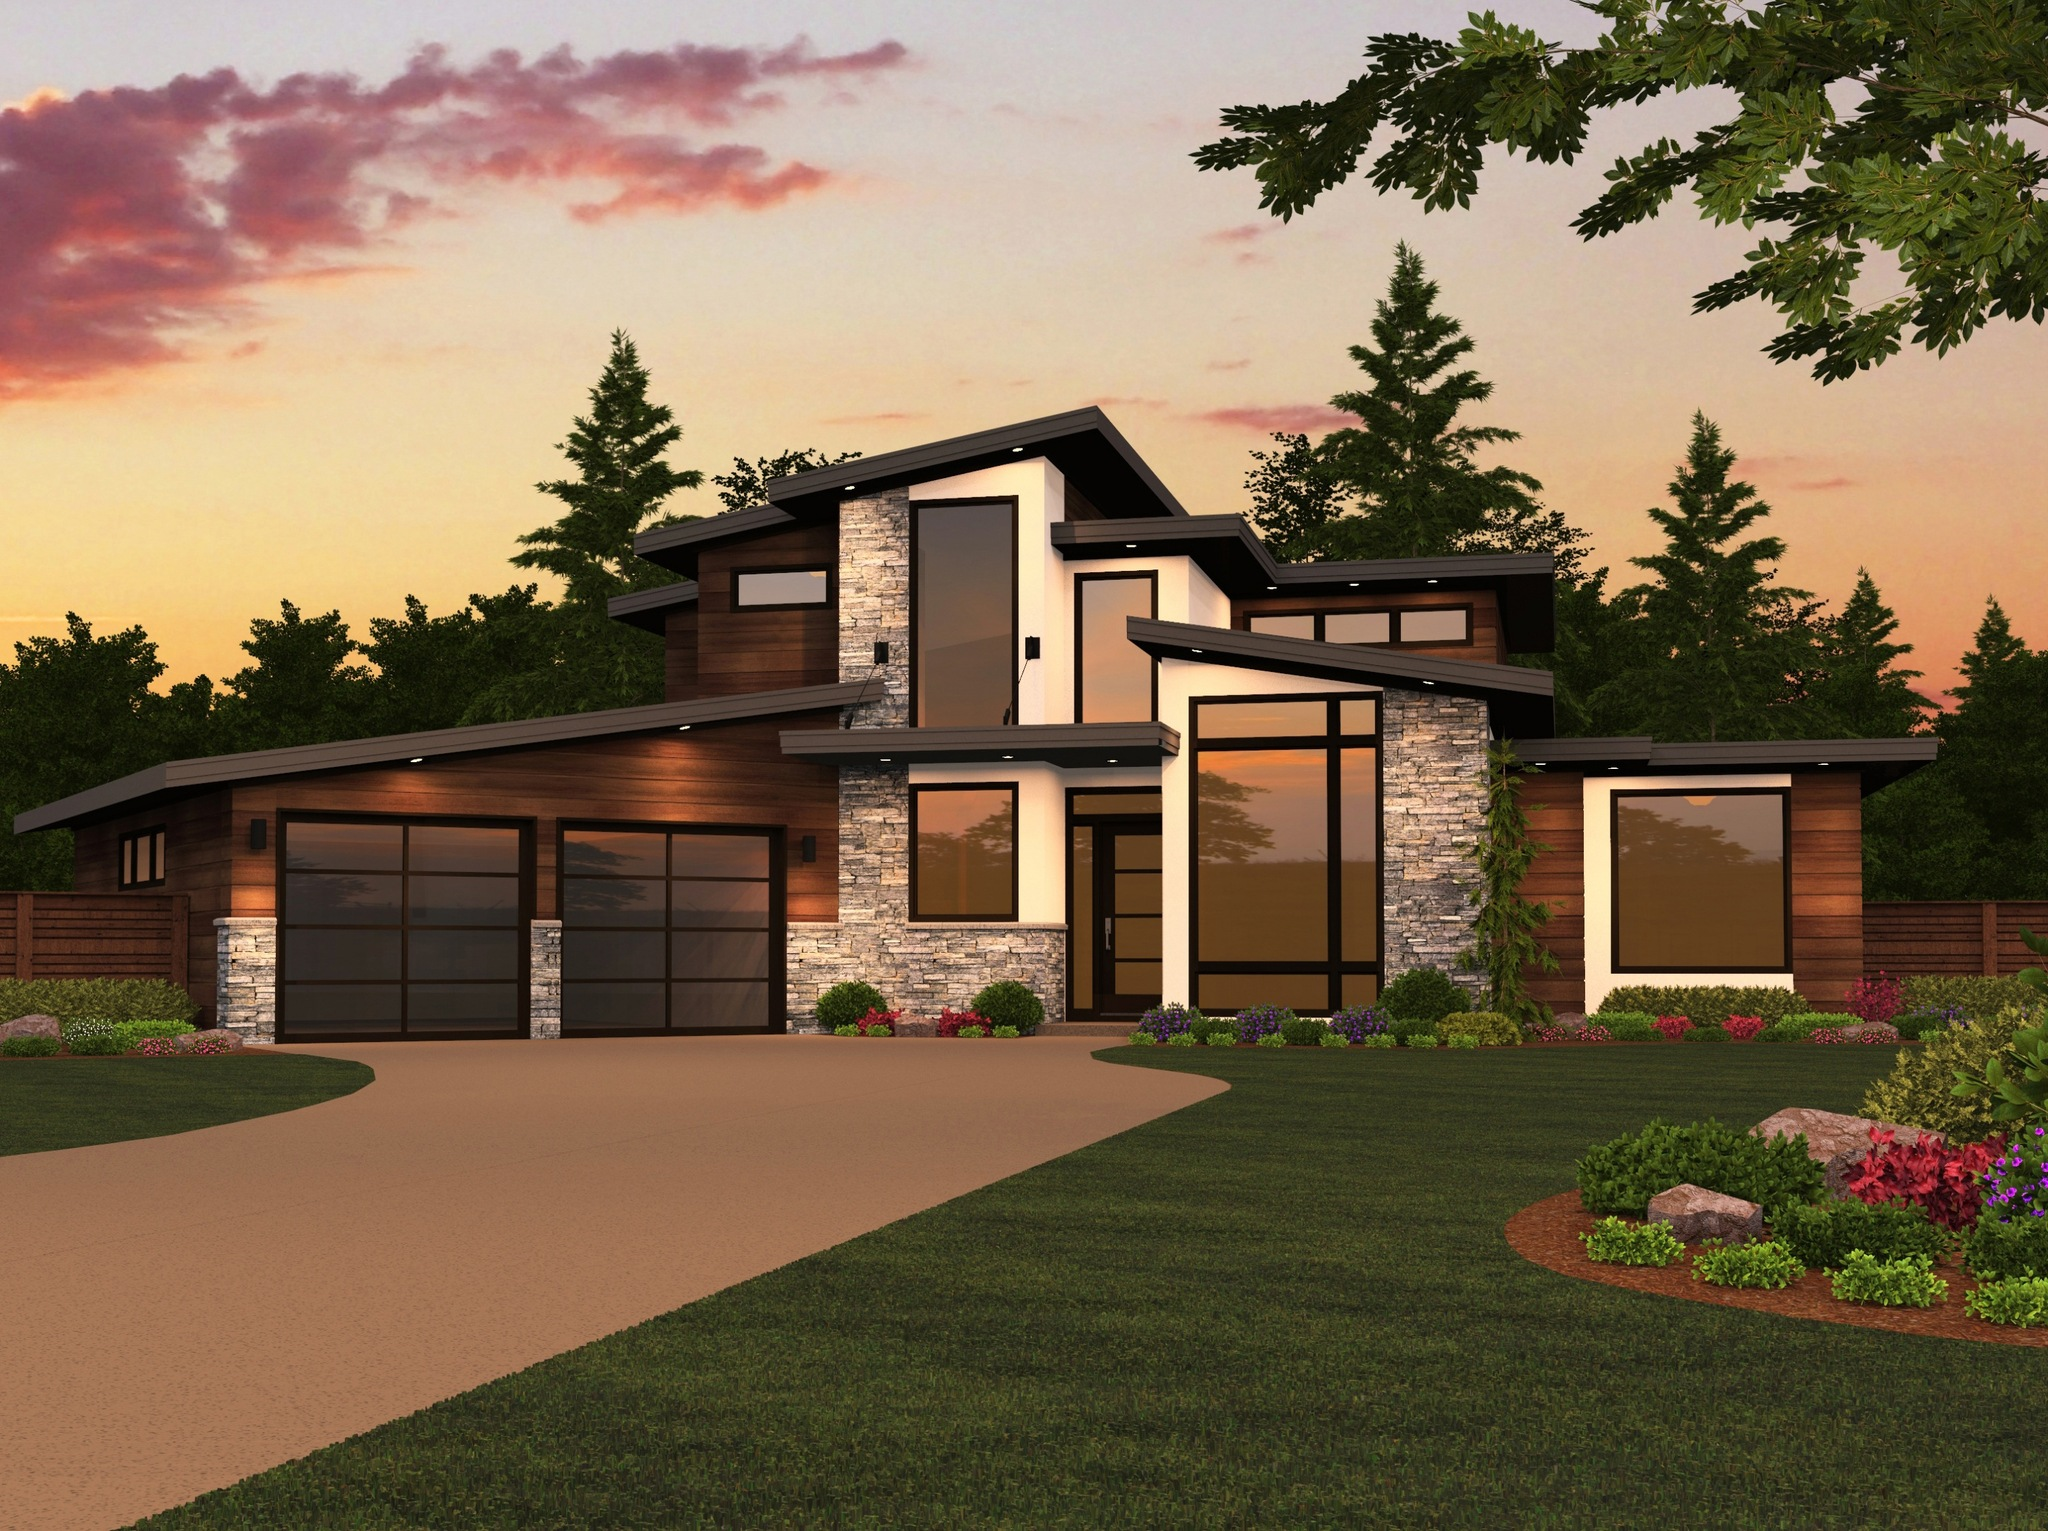 modern 2 story house plans dallas house plan 2 story modern house design plans with garage 9075